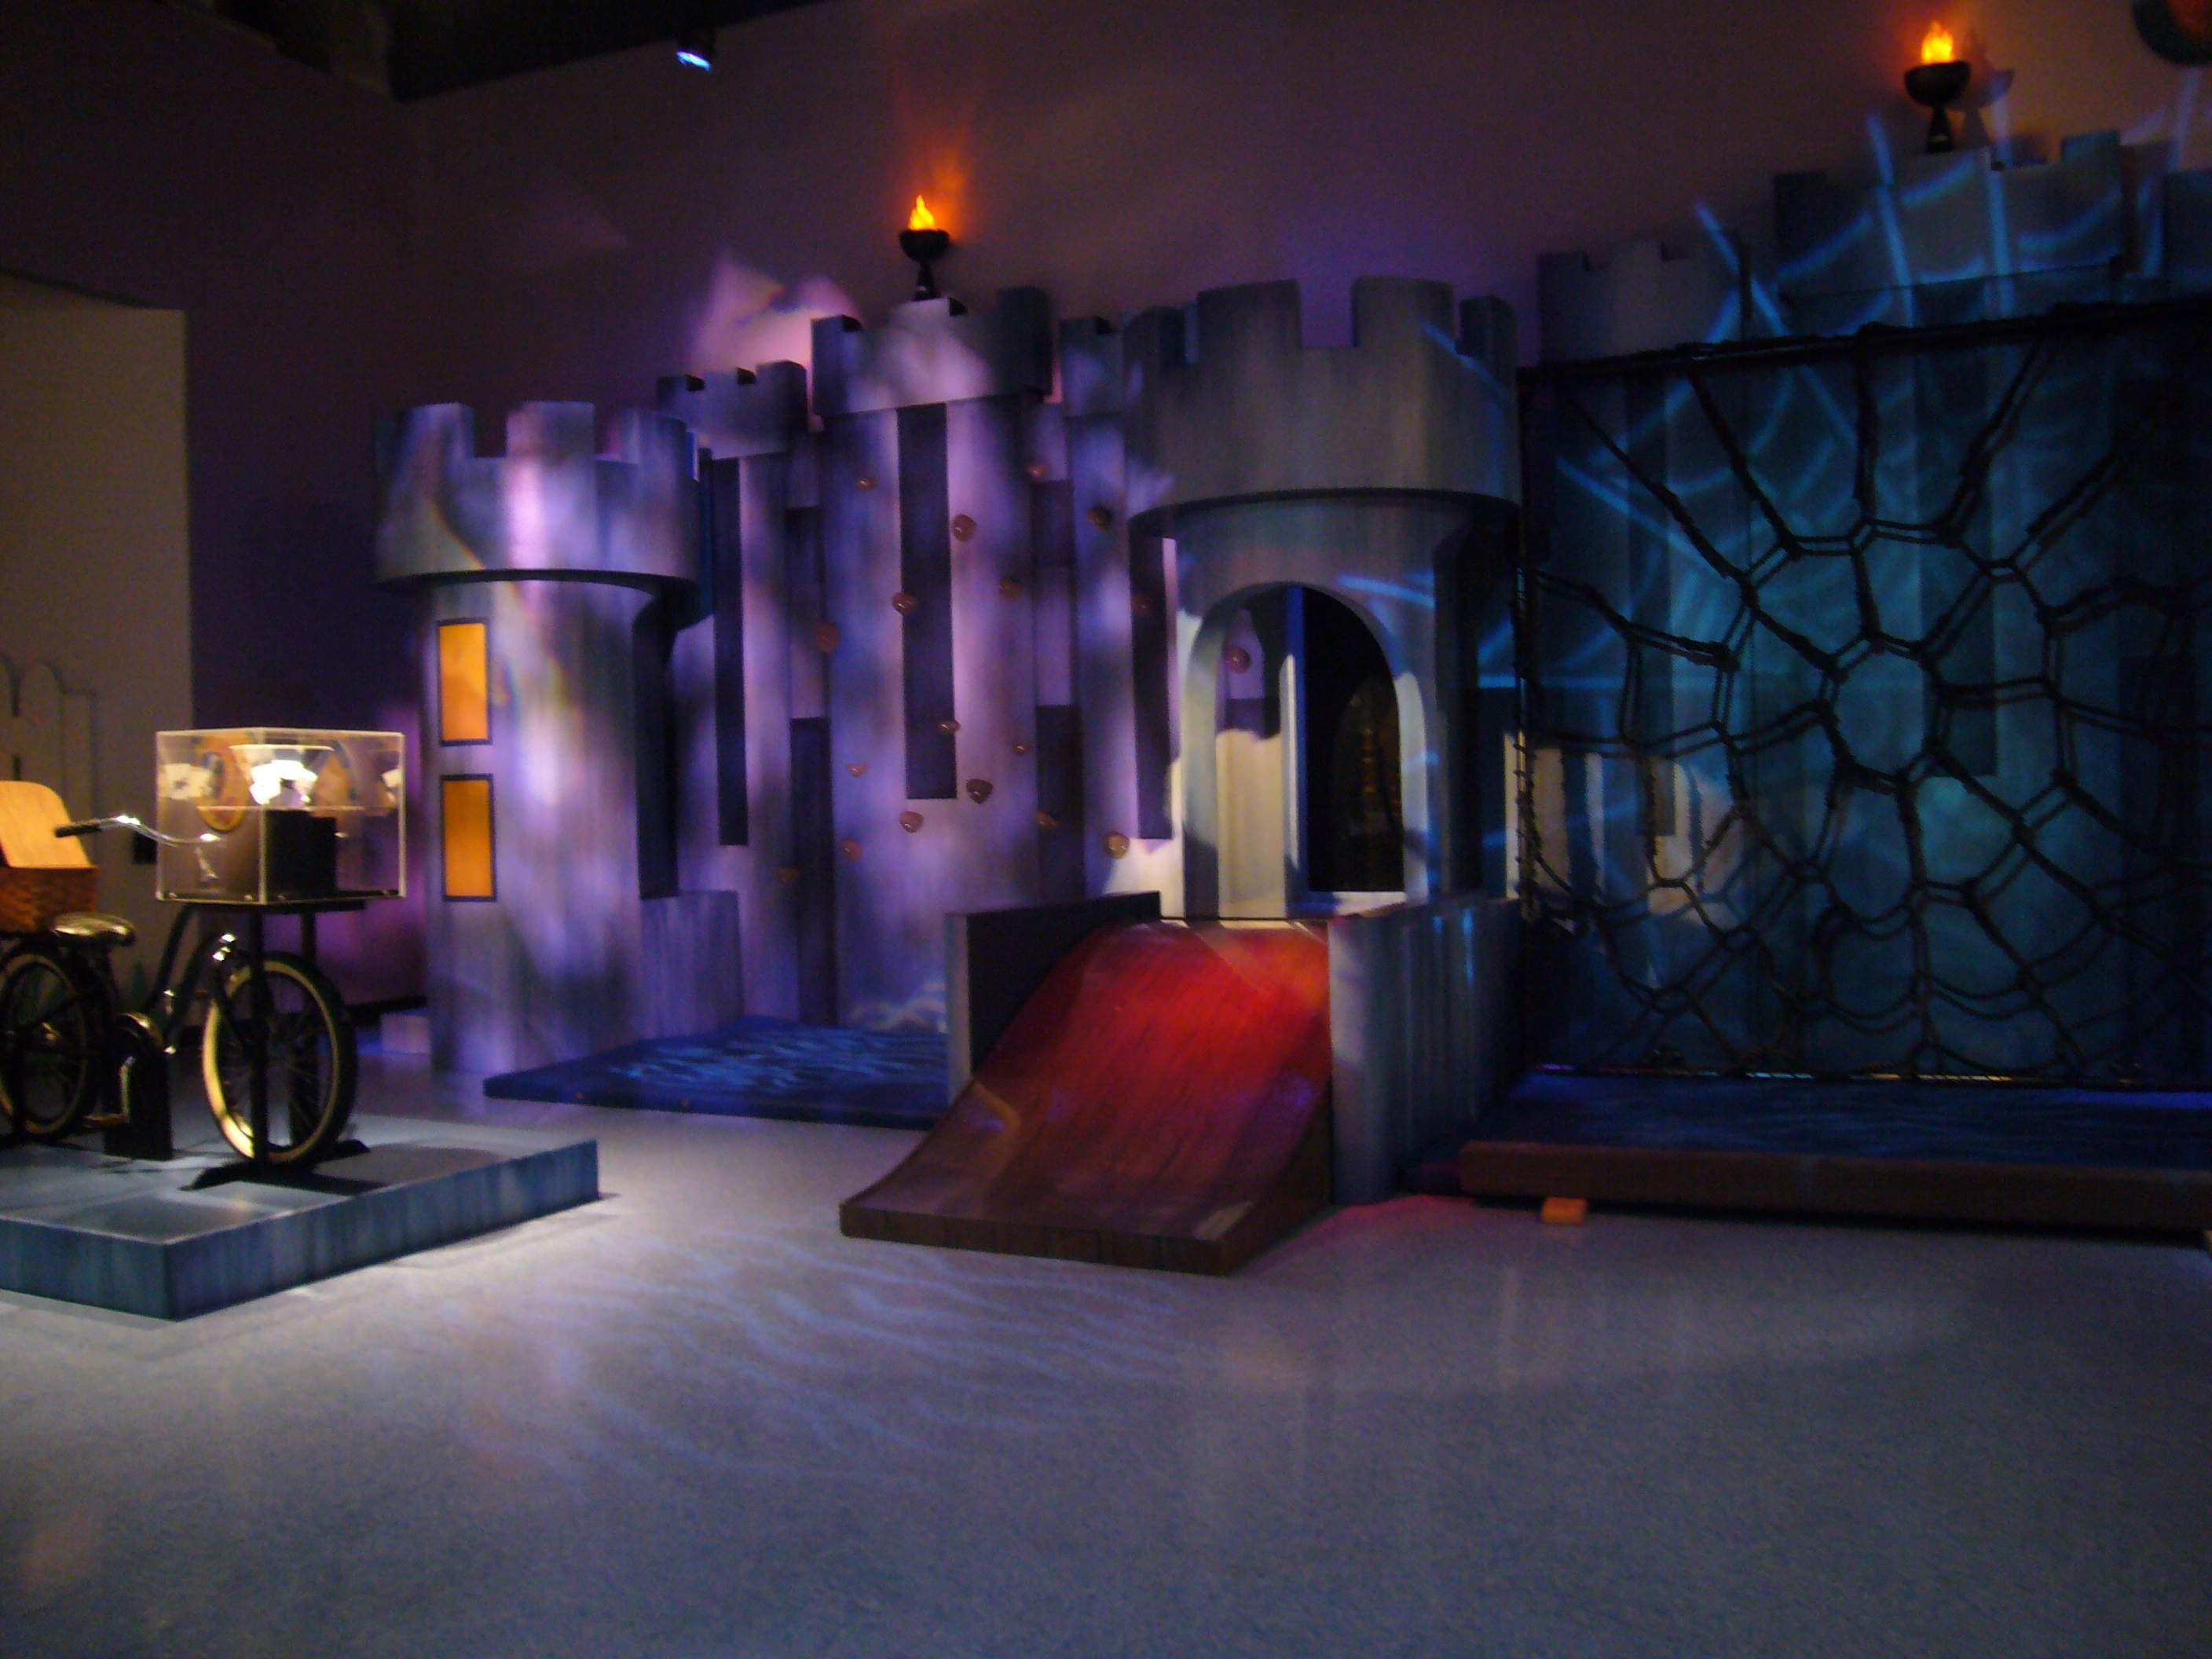 wicked witch of the west's castle | children's museum exhibit